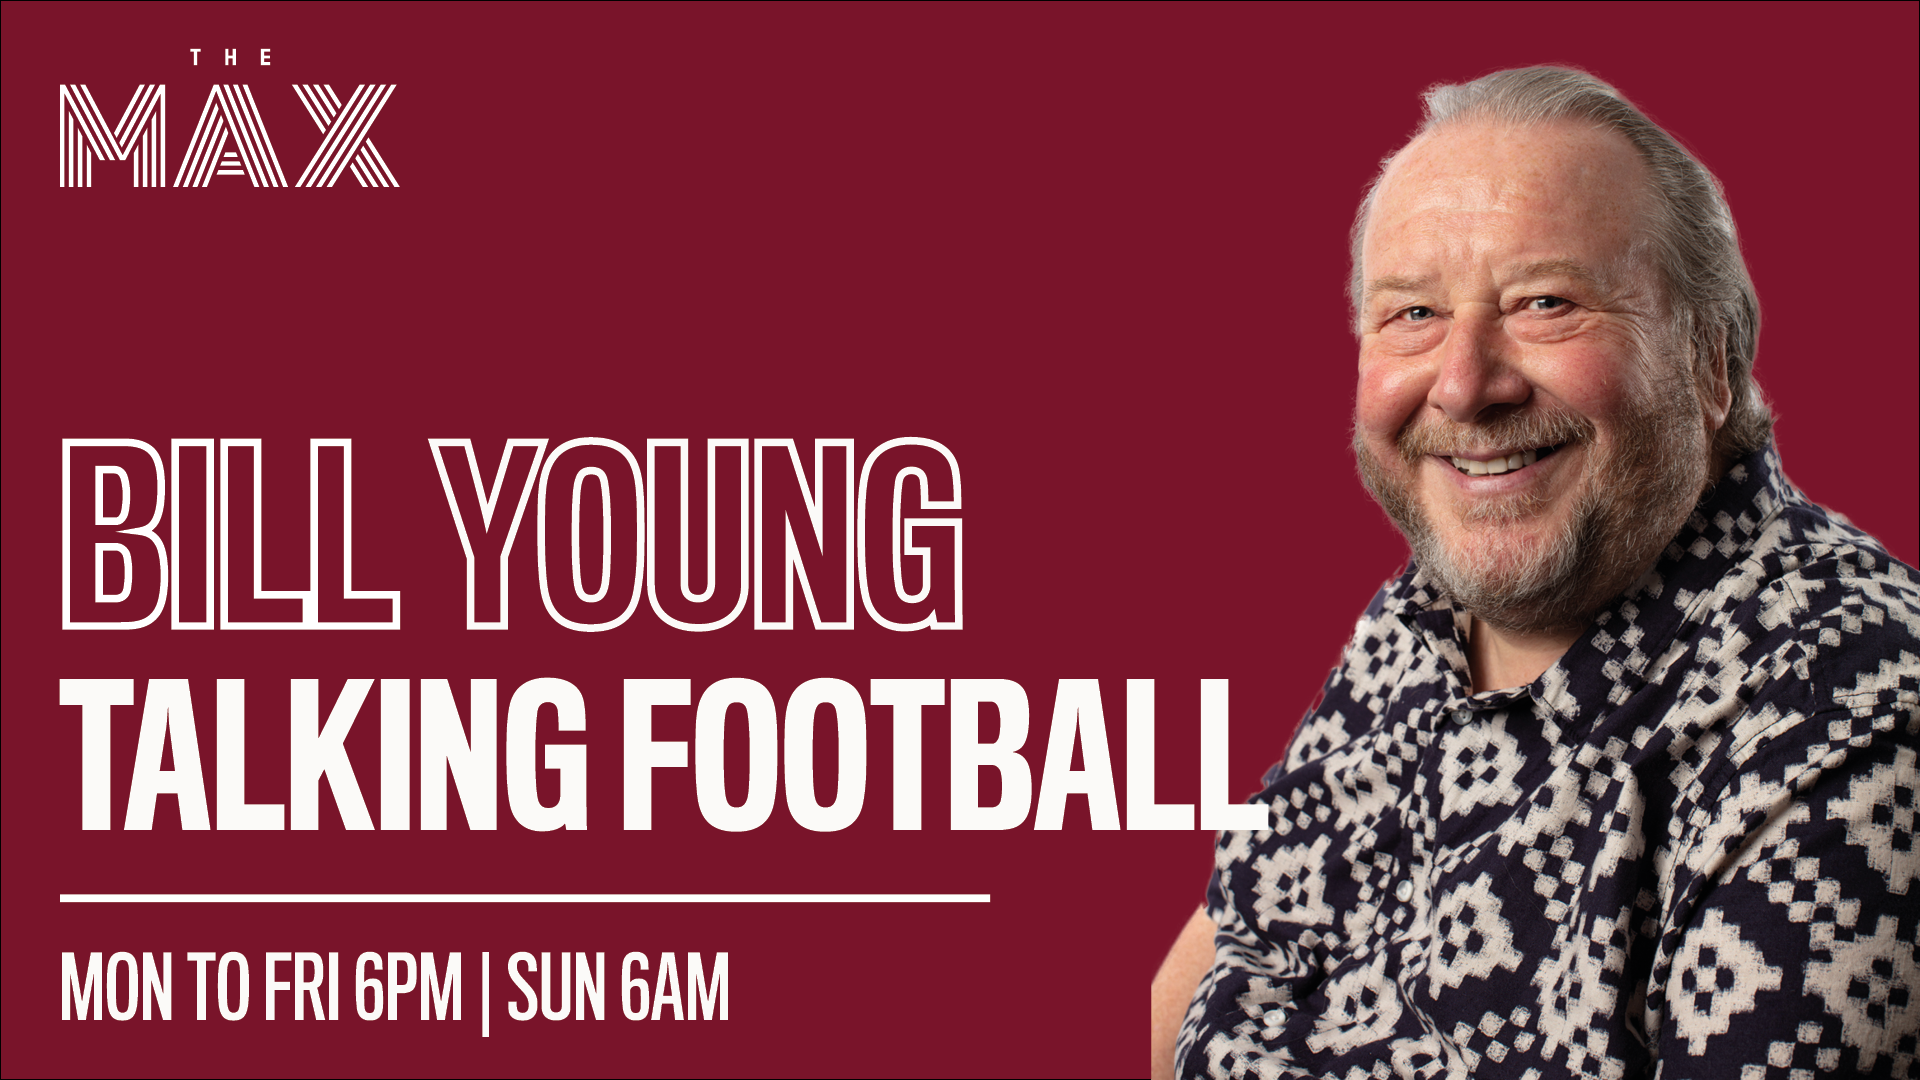 Talking Football with Bill Young - Wednesday 3rd March